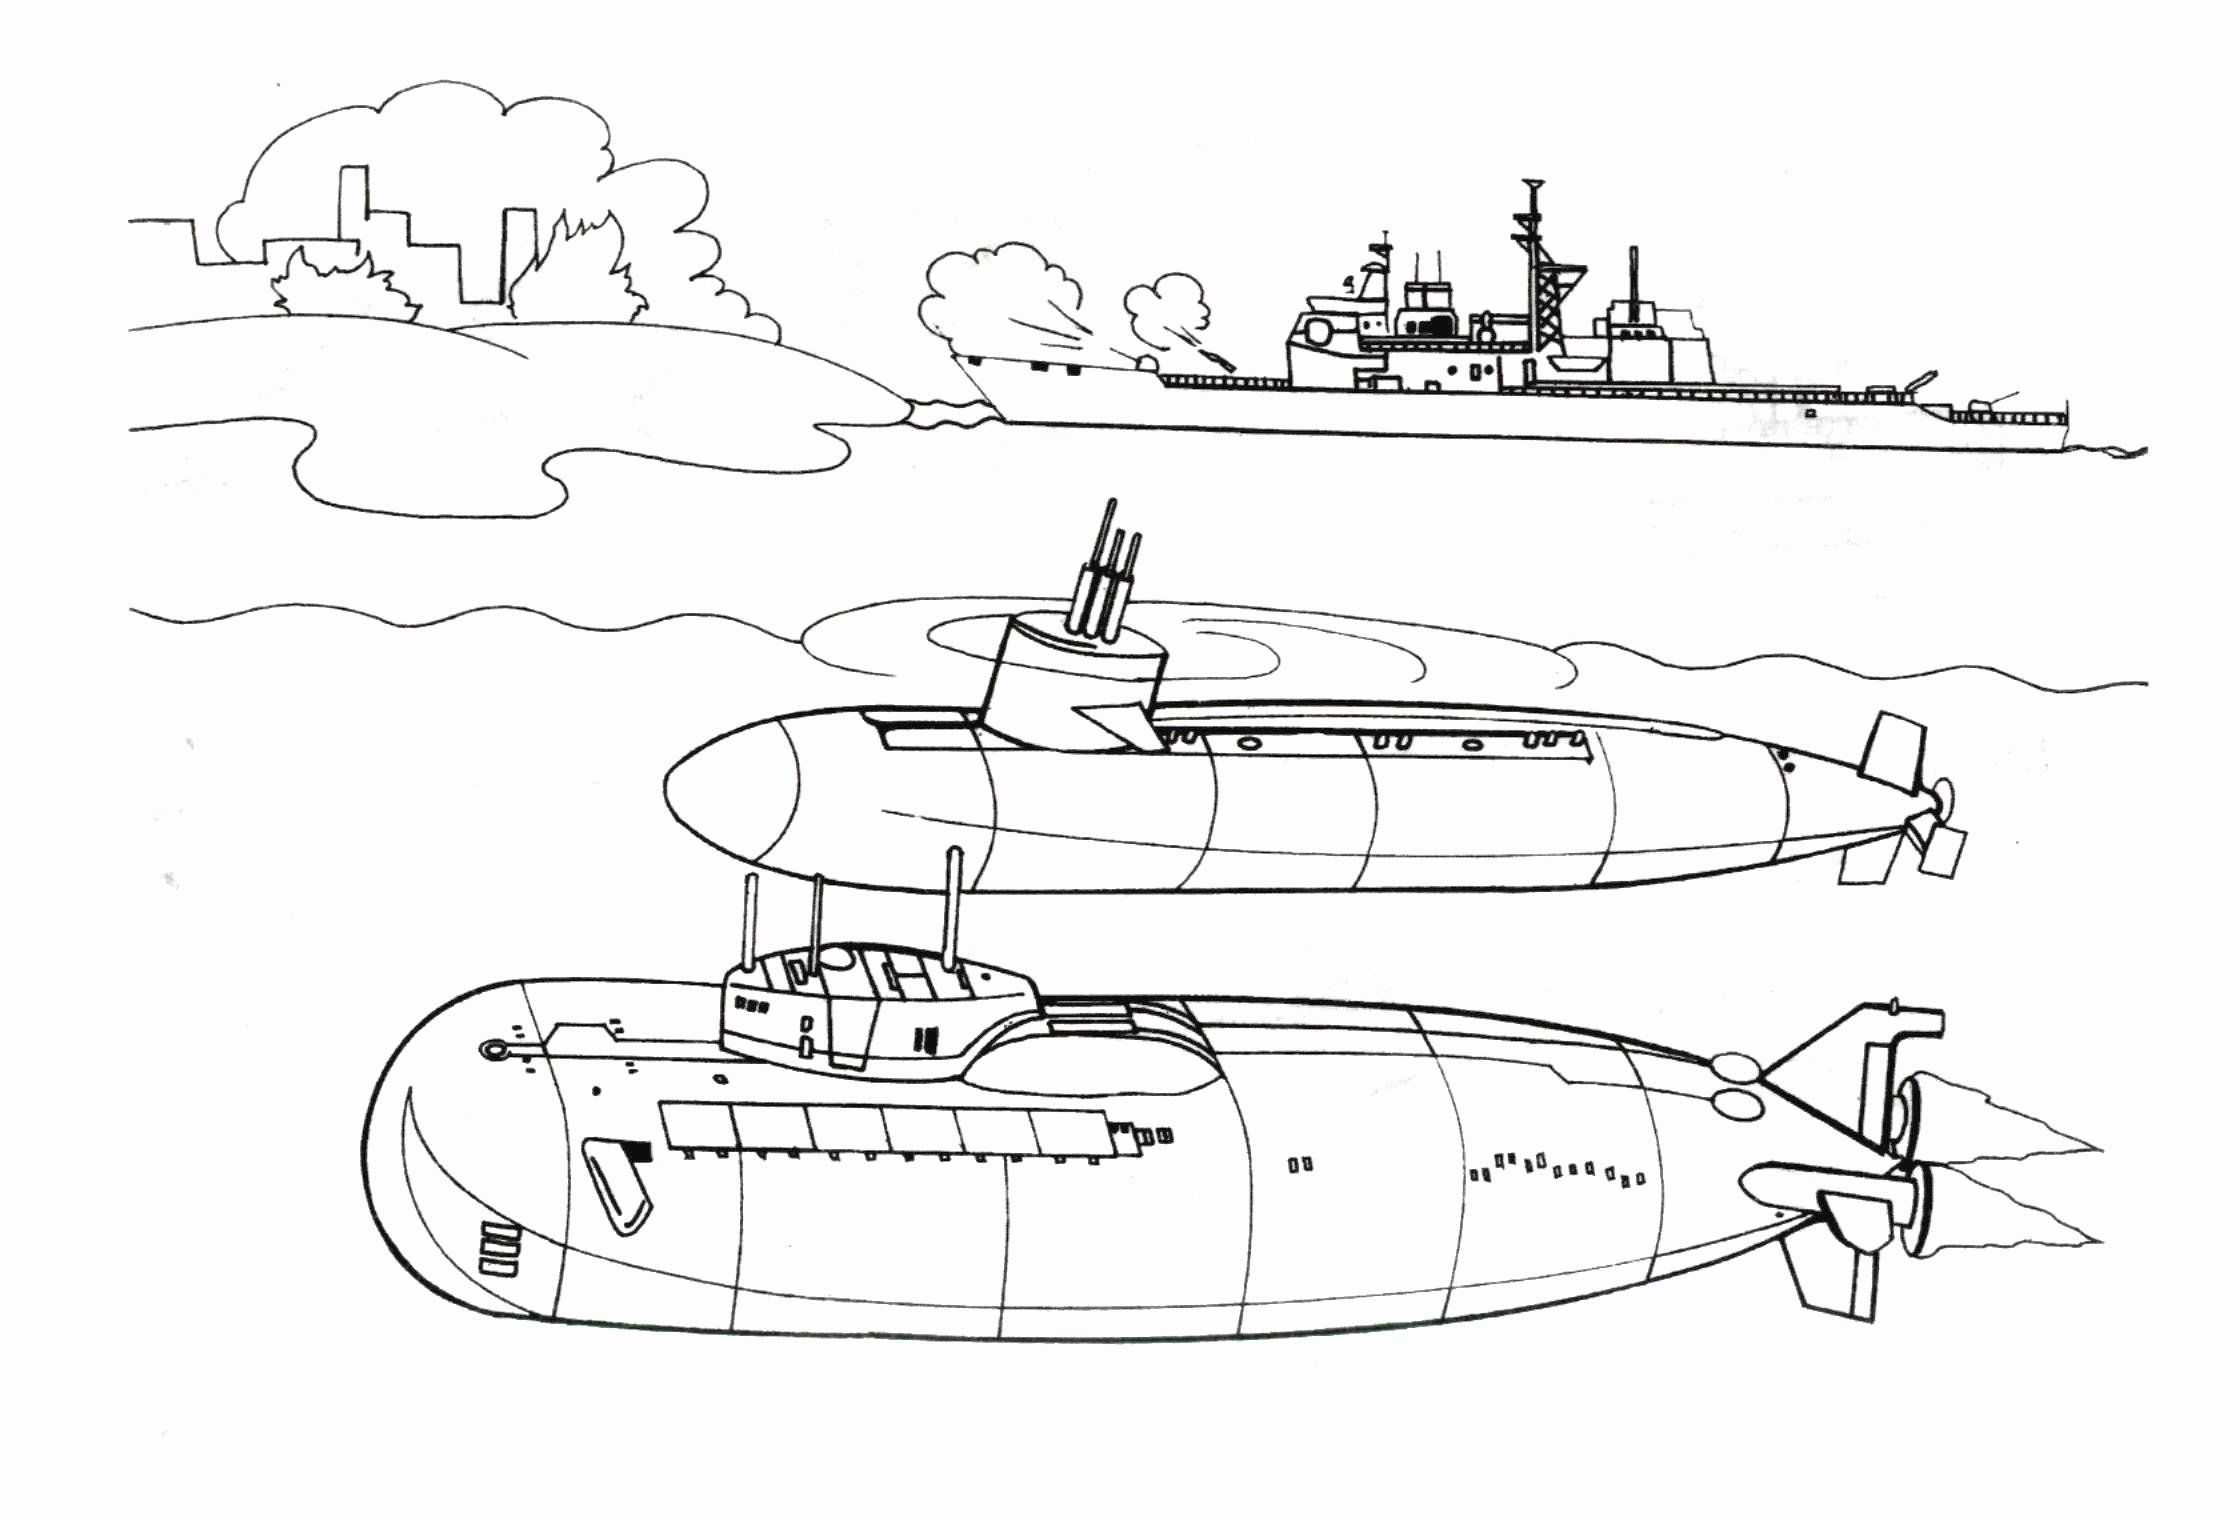 Military Aircraft Coloring Pages Best Of New Army Boat Coloring Pages Vehicle Coloring Page Coloring Pages Coloring Pages For Kids Flag Coloring Pages